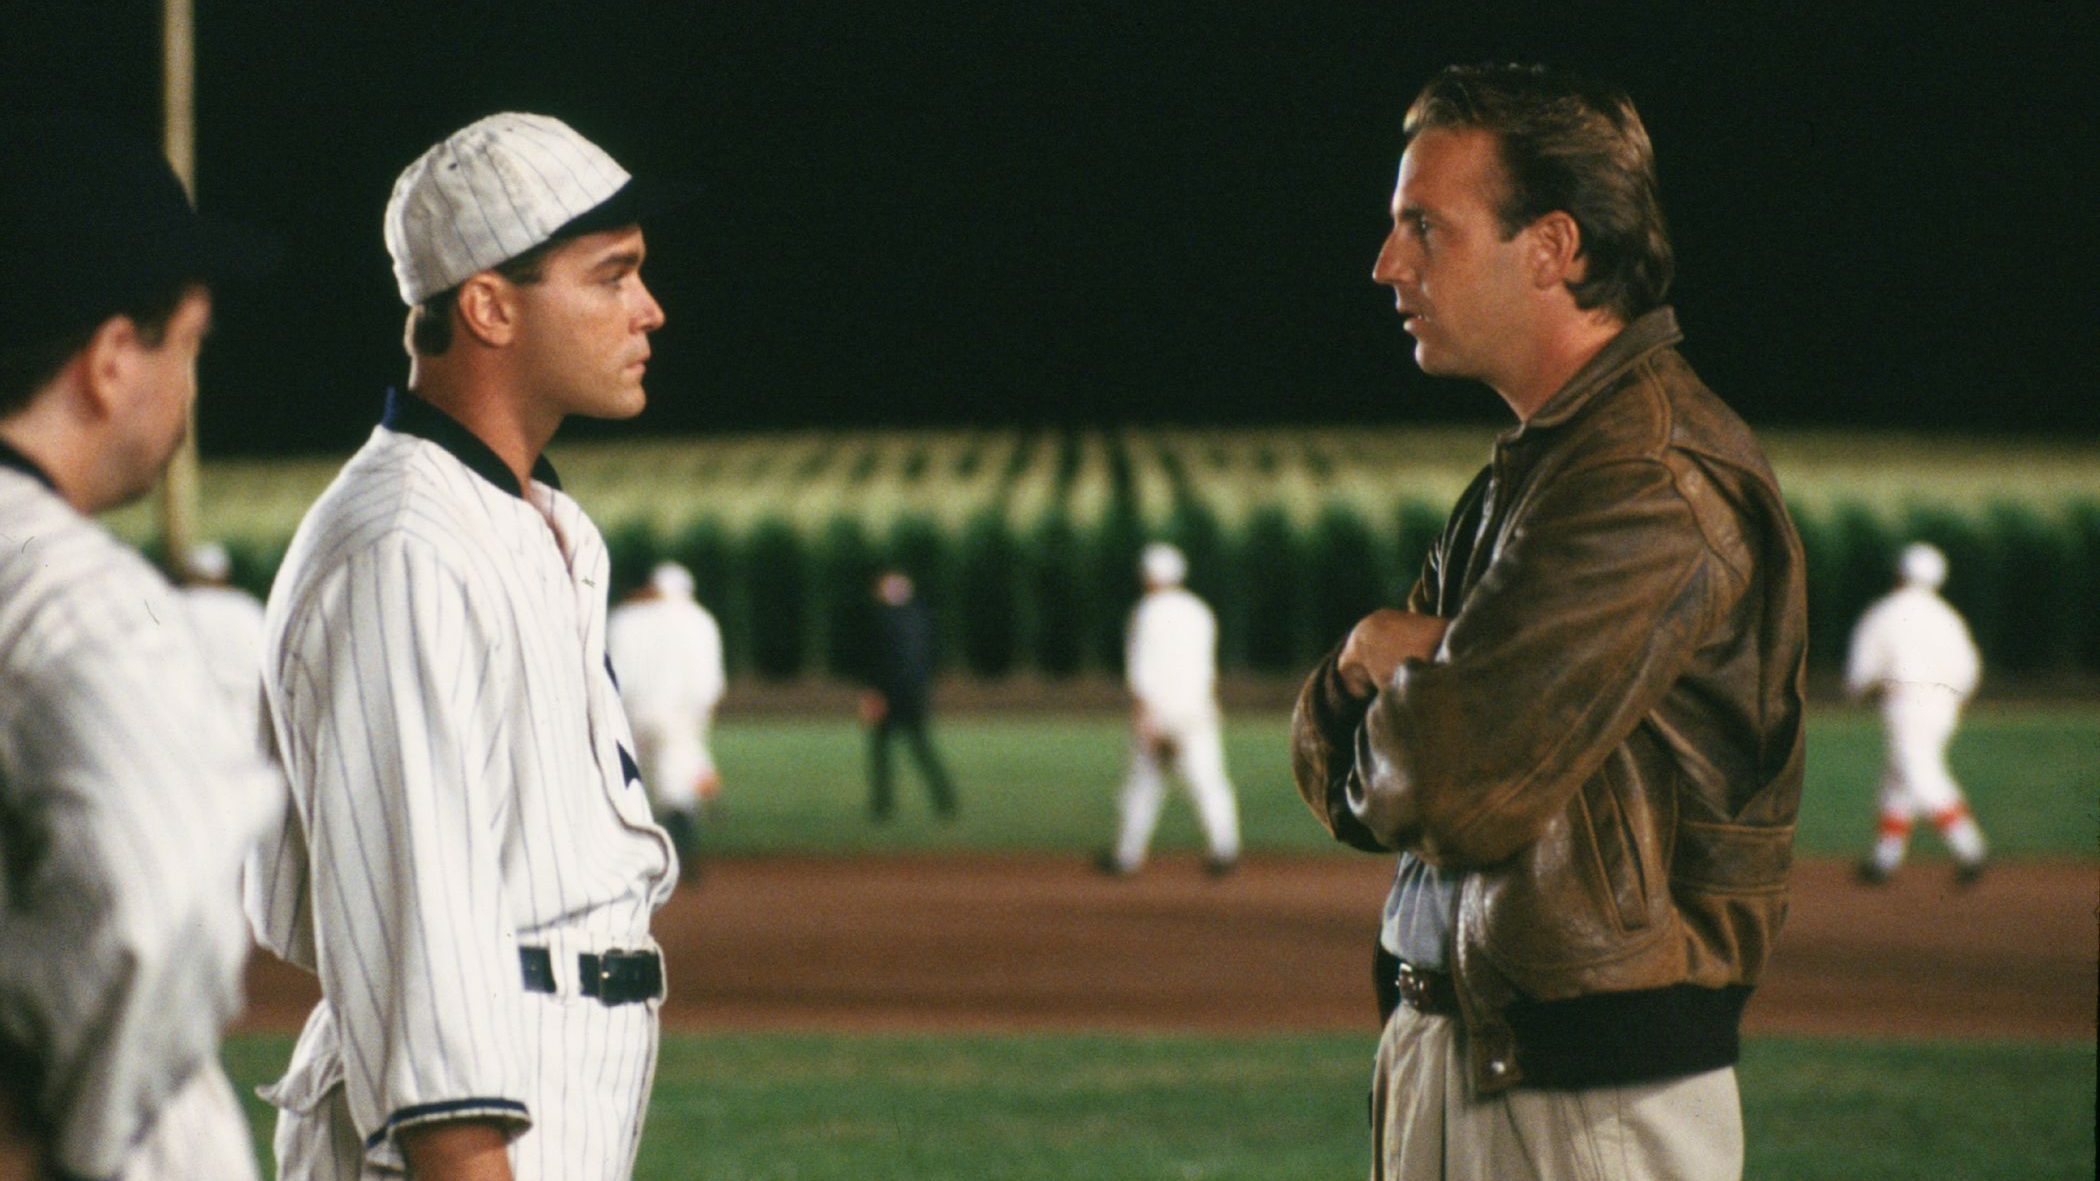 A still from the Field of Dreams 1989 movie.